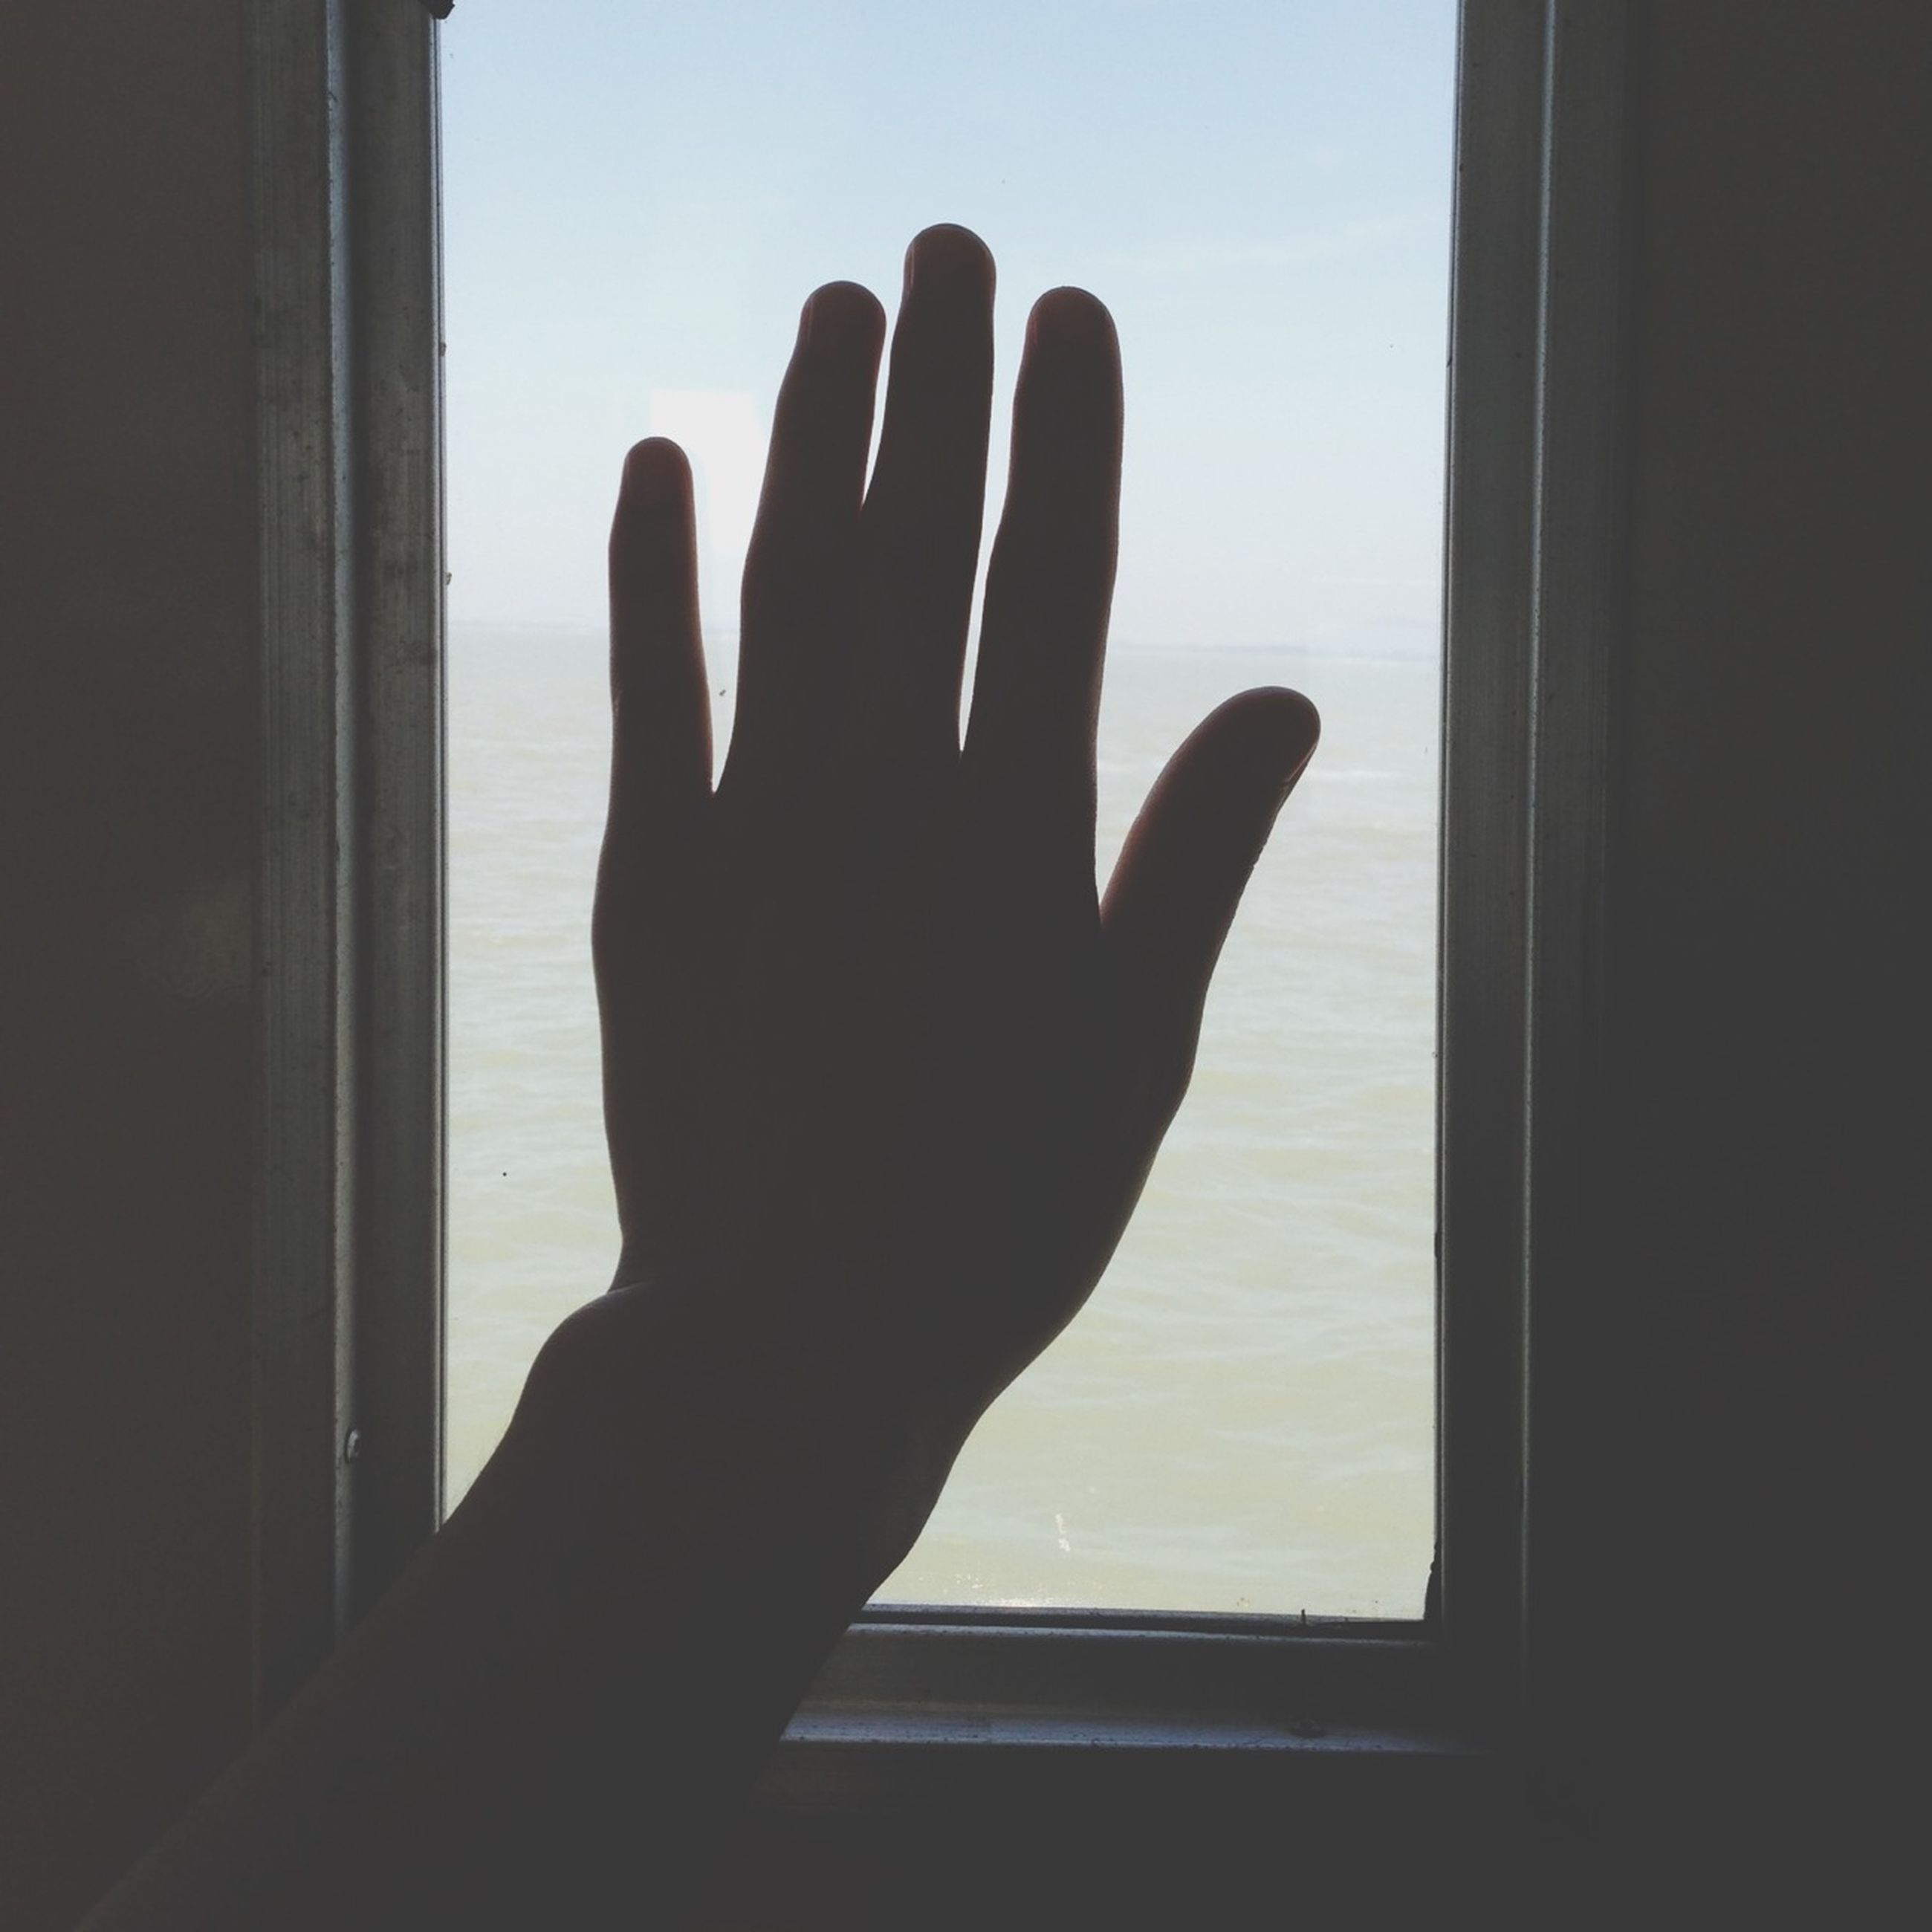 person, indoors, part of, window, cropped, human finger, glass - material, sky, transparent, personal perspective, silhouette, unrecognizable person, close-up, holding, home interior, sunlight, day